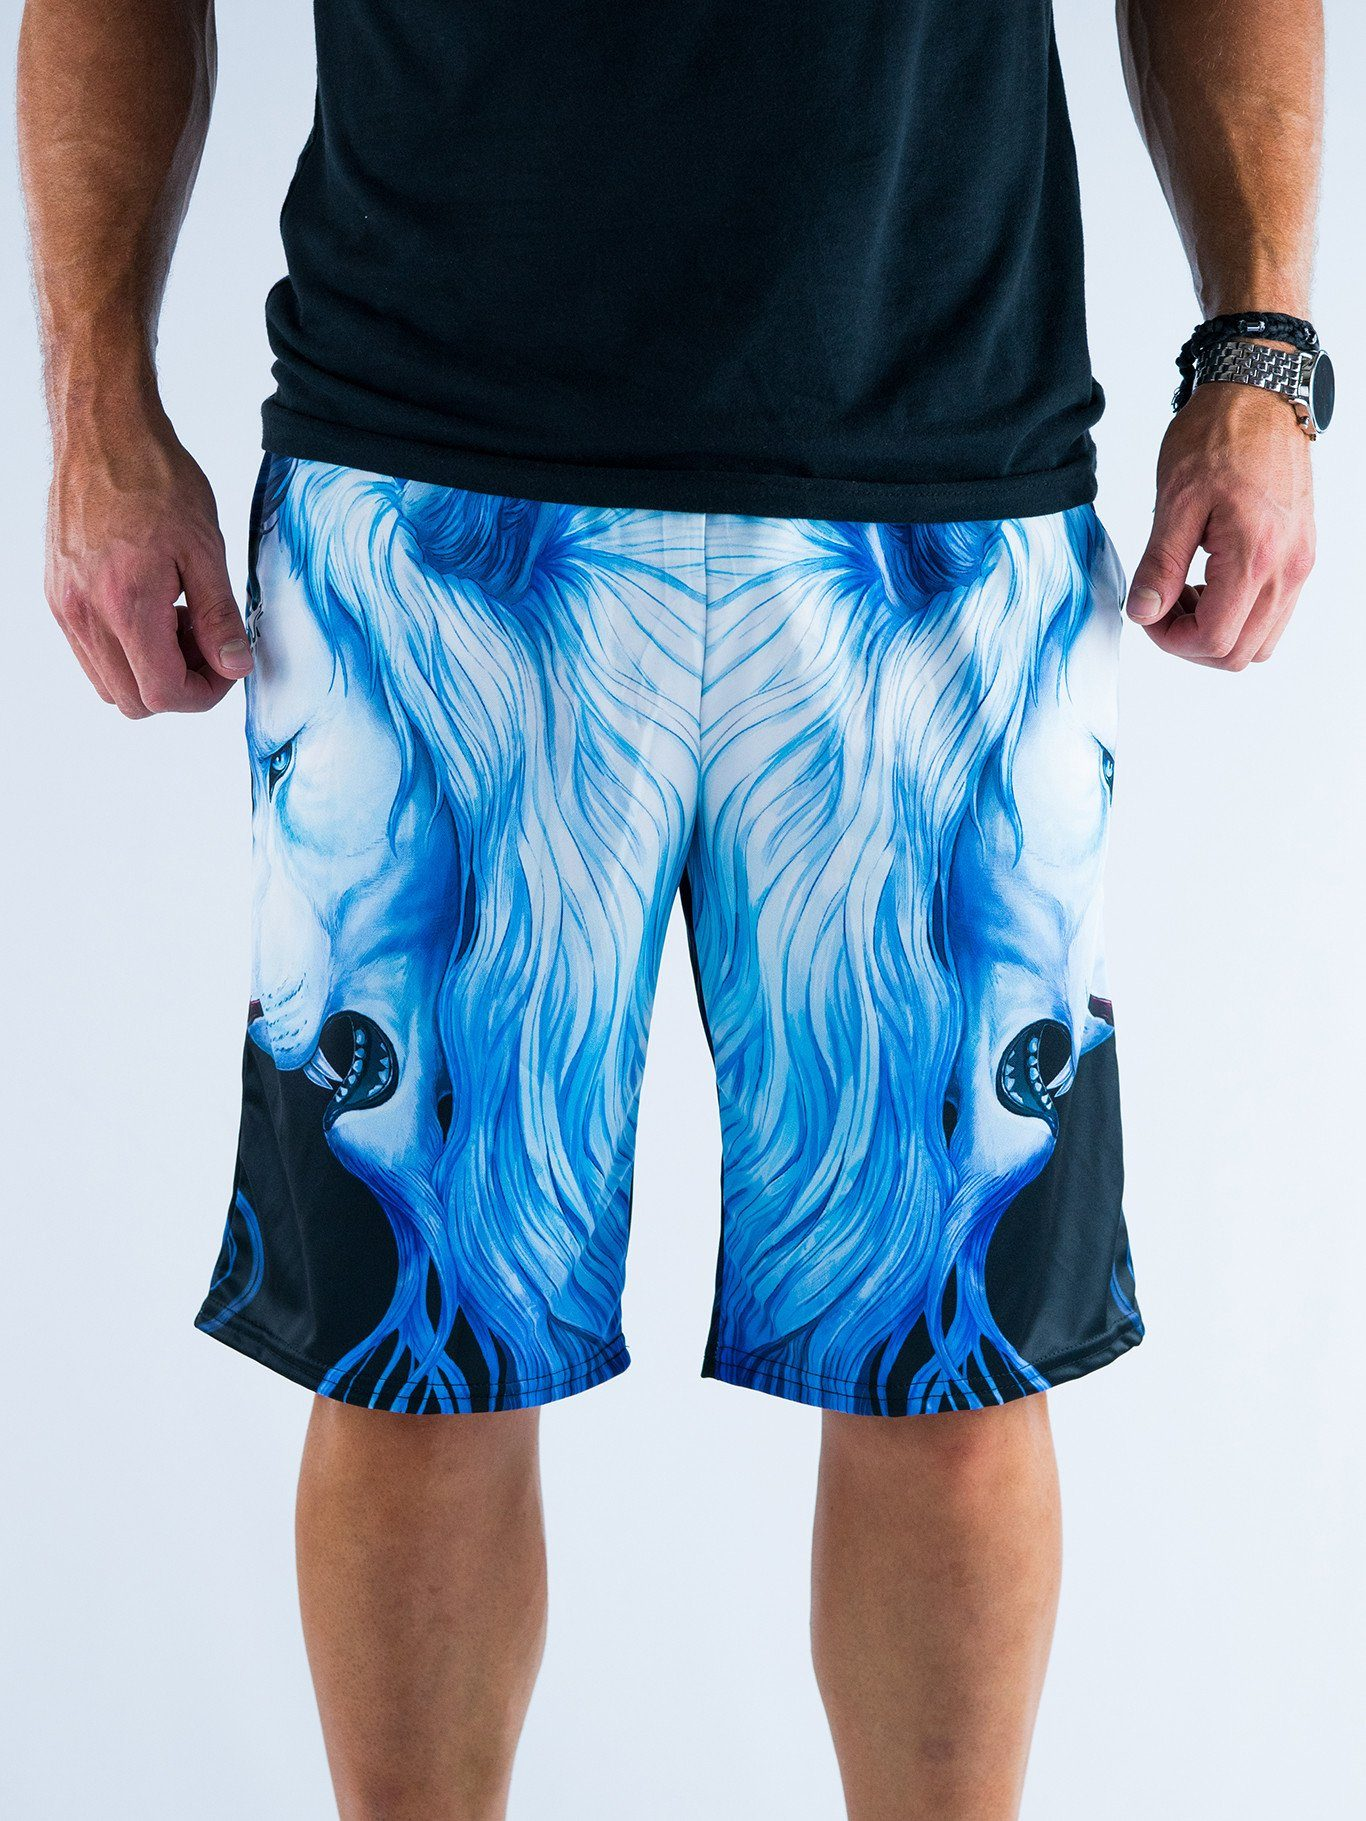 Brotherhood Shorts Mens Shorts T6